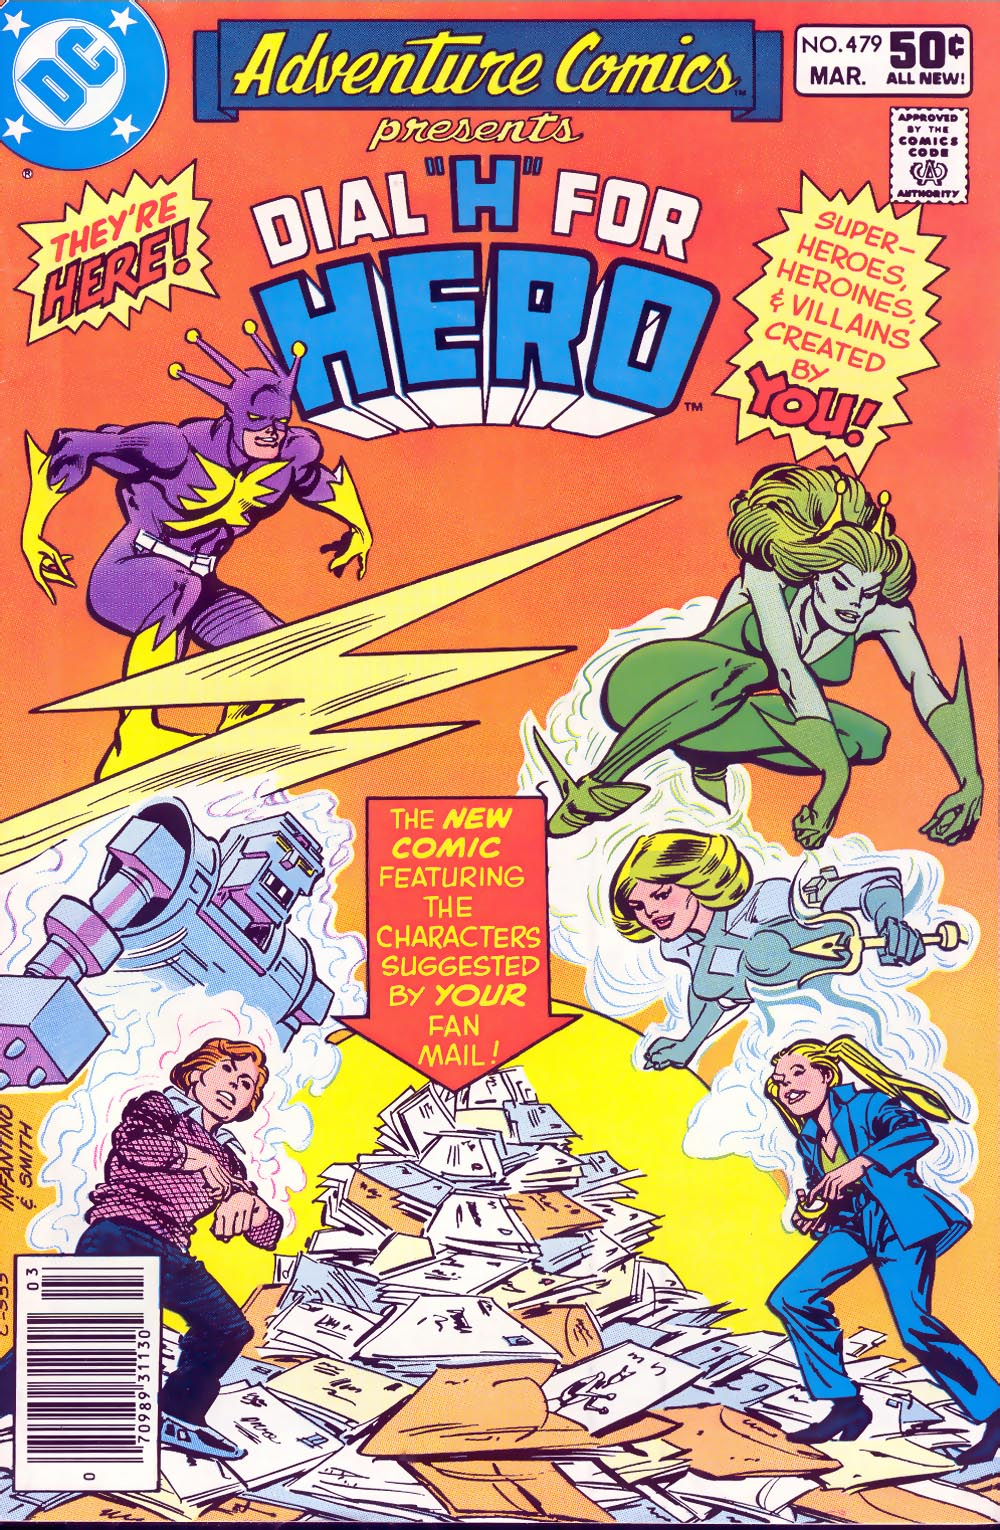 Adventure Comics (1938) #479, cover penciled by Carmine Infantino & inked by Bob Smith.